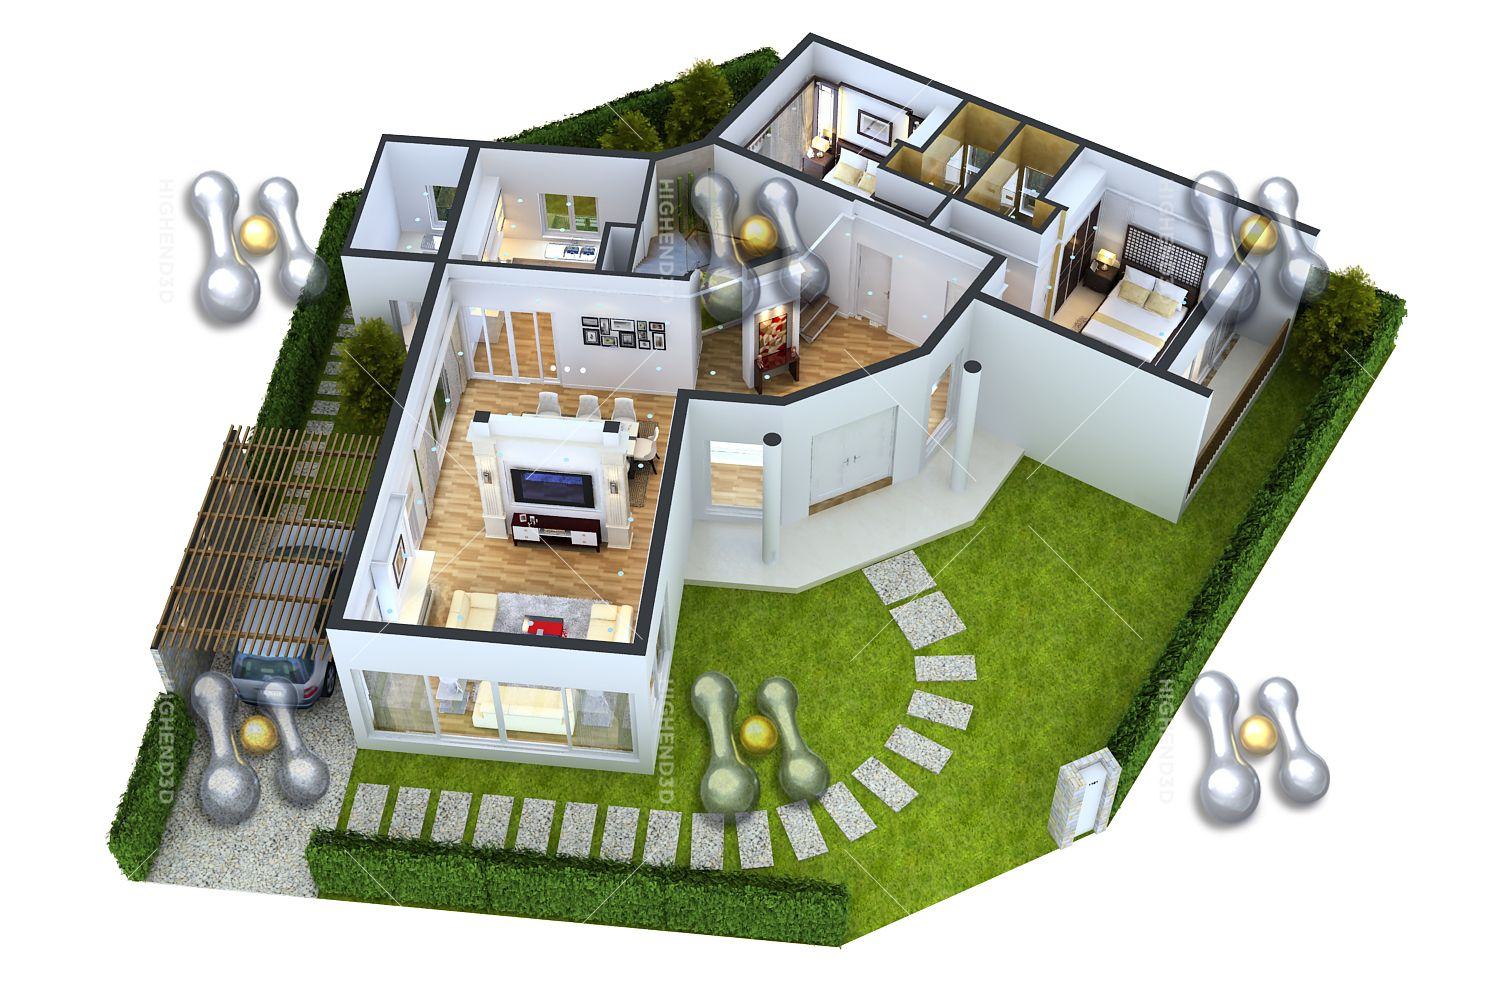 2 bedroom house plans 3d Google Search townhouse Pinterest. 25 More 3 Bedroom 3D Floor Plans 3D House Floor Plan Ideas